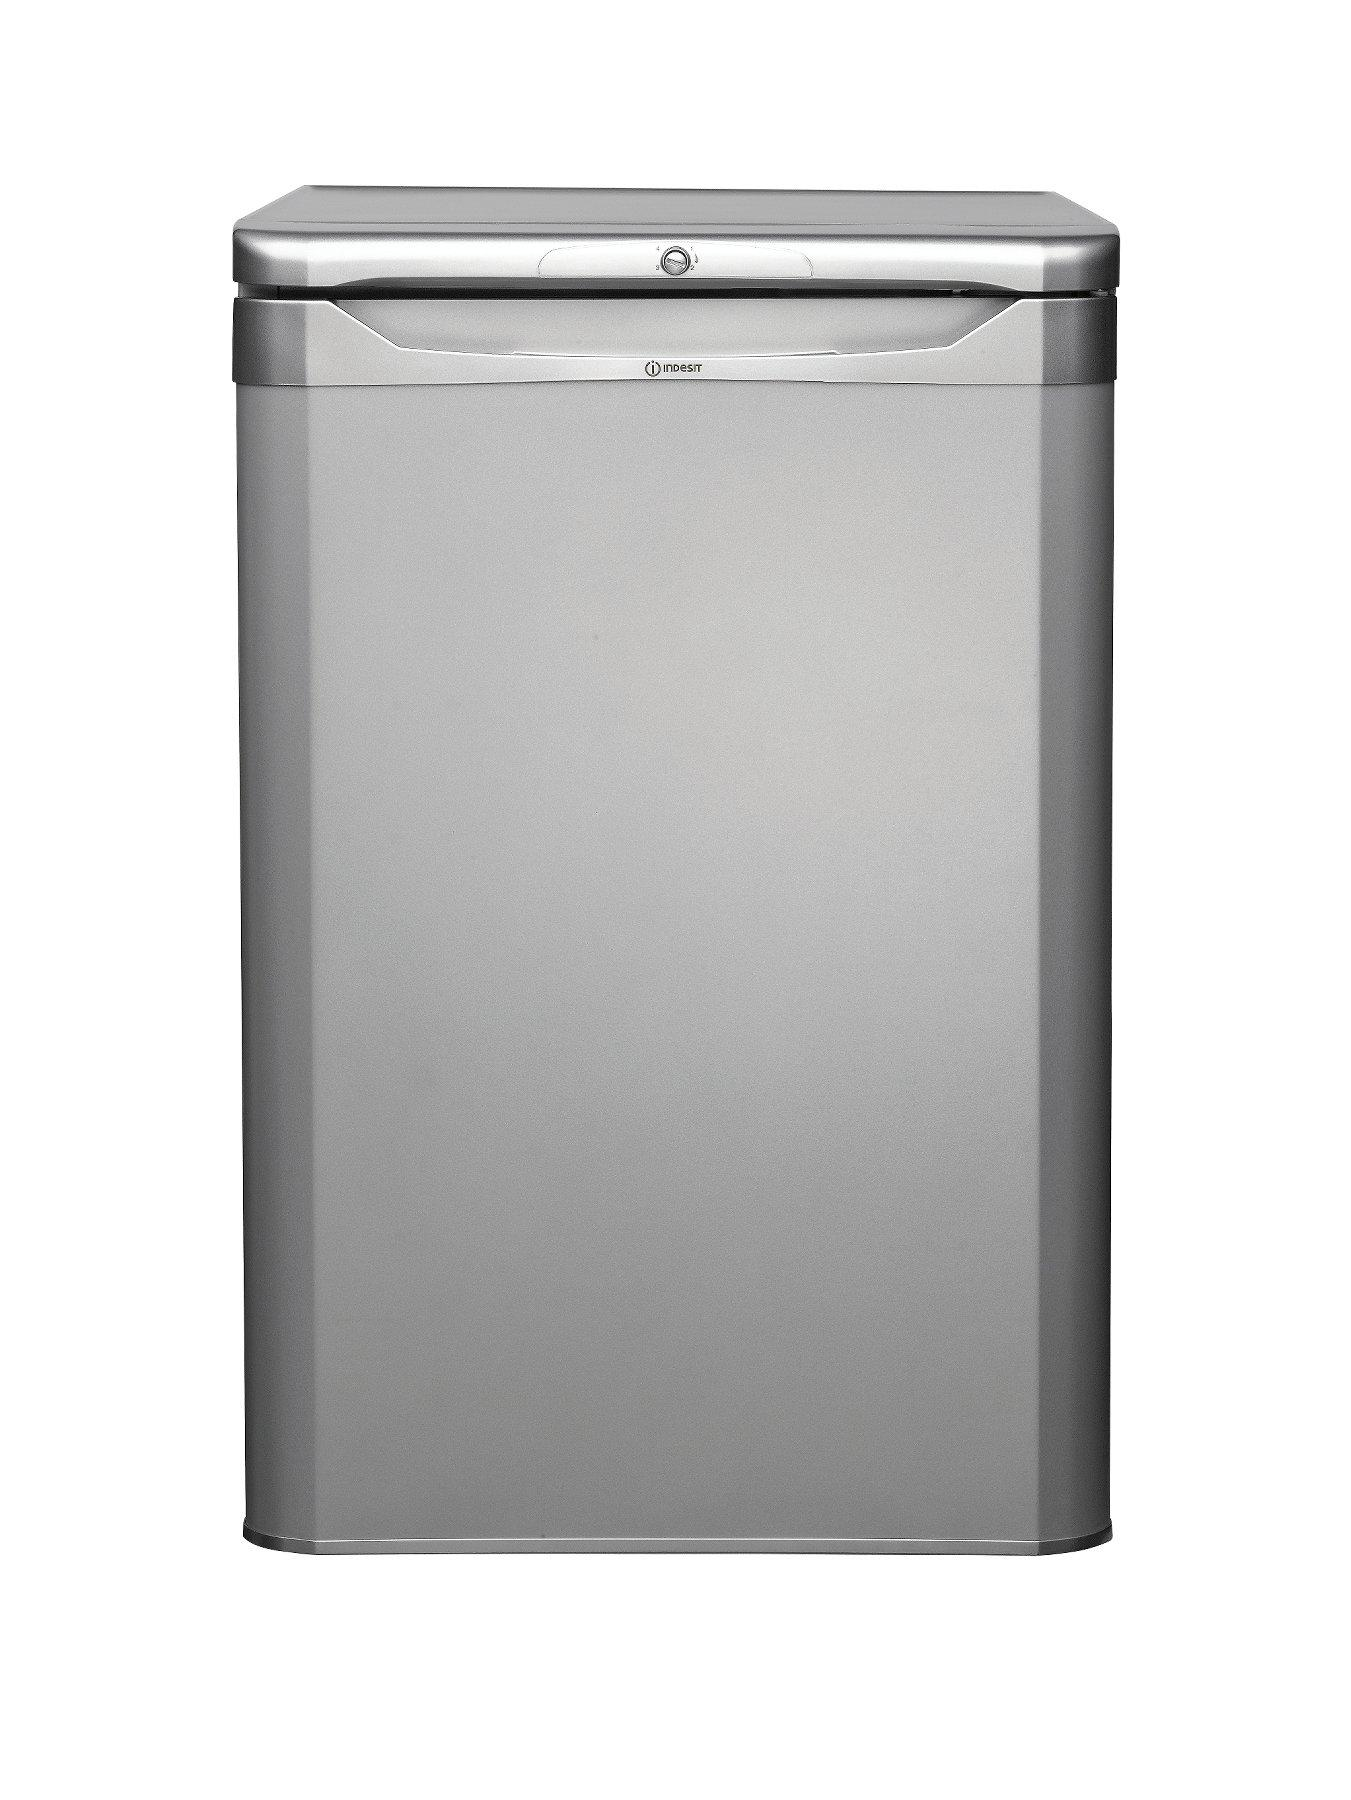 TZAA10S 55cm Under Counter Freezer - Silver